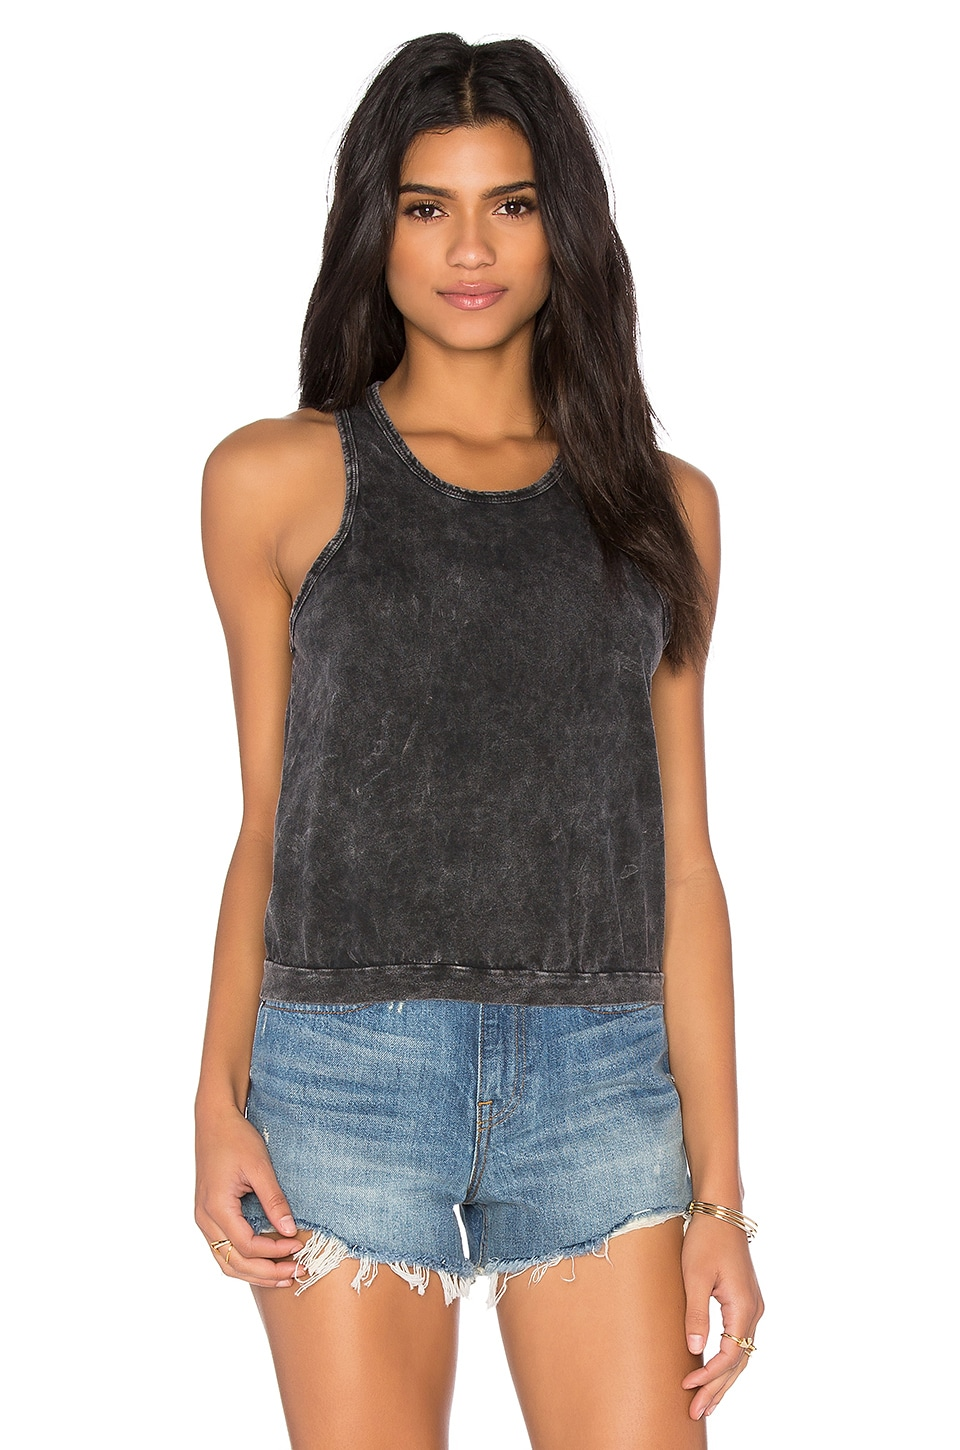 NYTT Nisha Crop Top in Black Mineral Wash